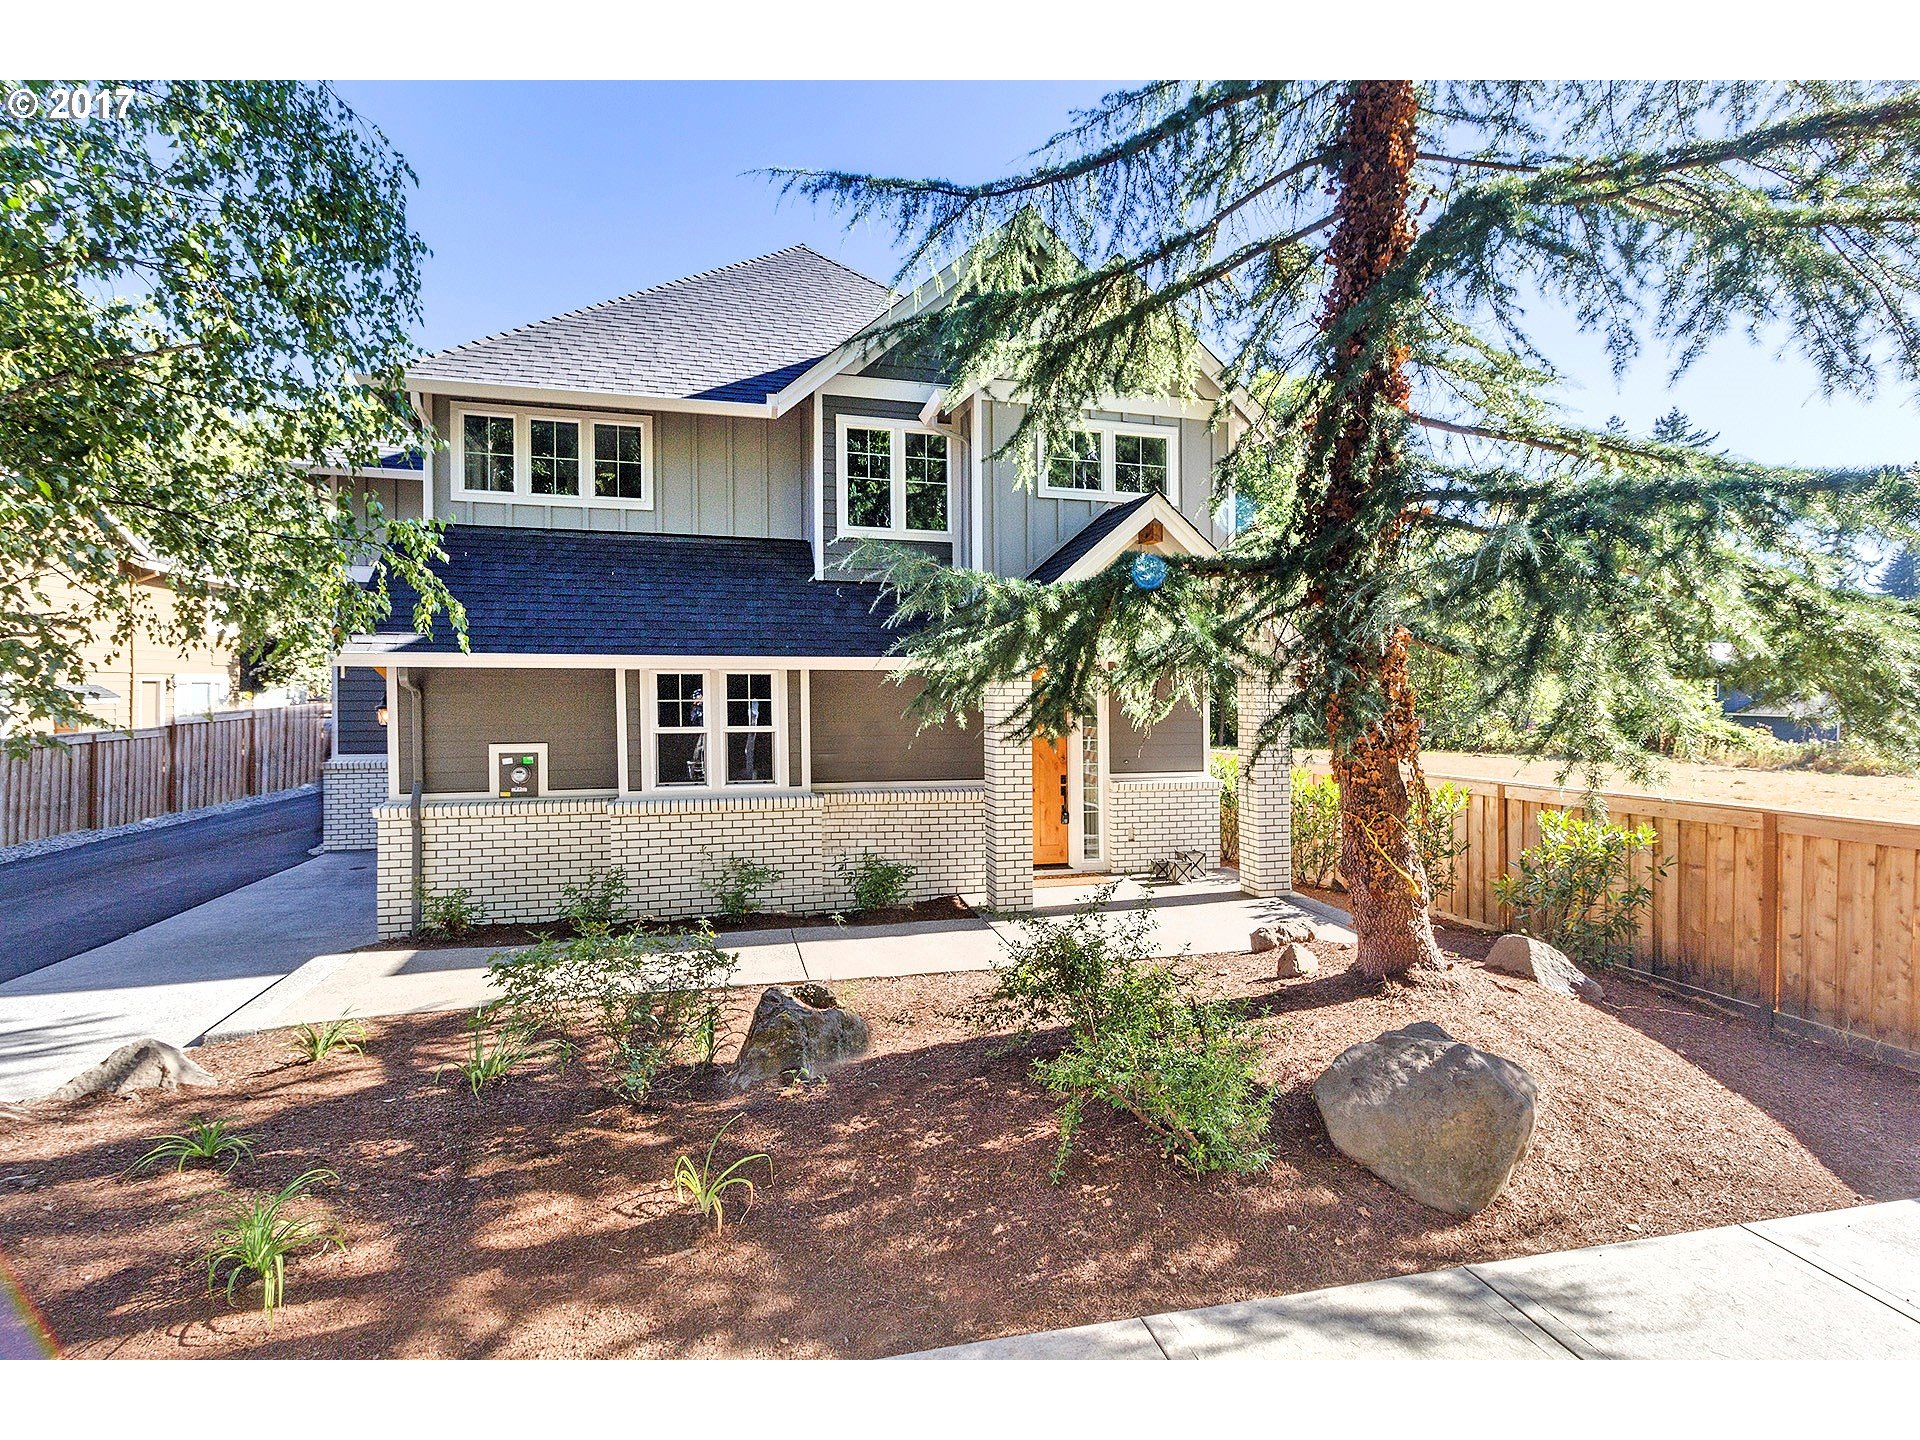 5228 LOWER DR, Lake Oswego, OR 97035